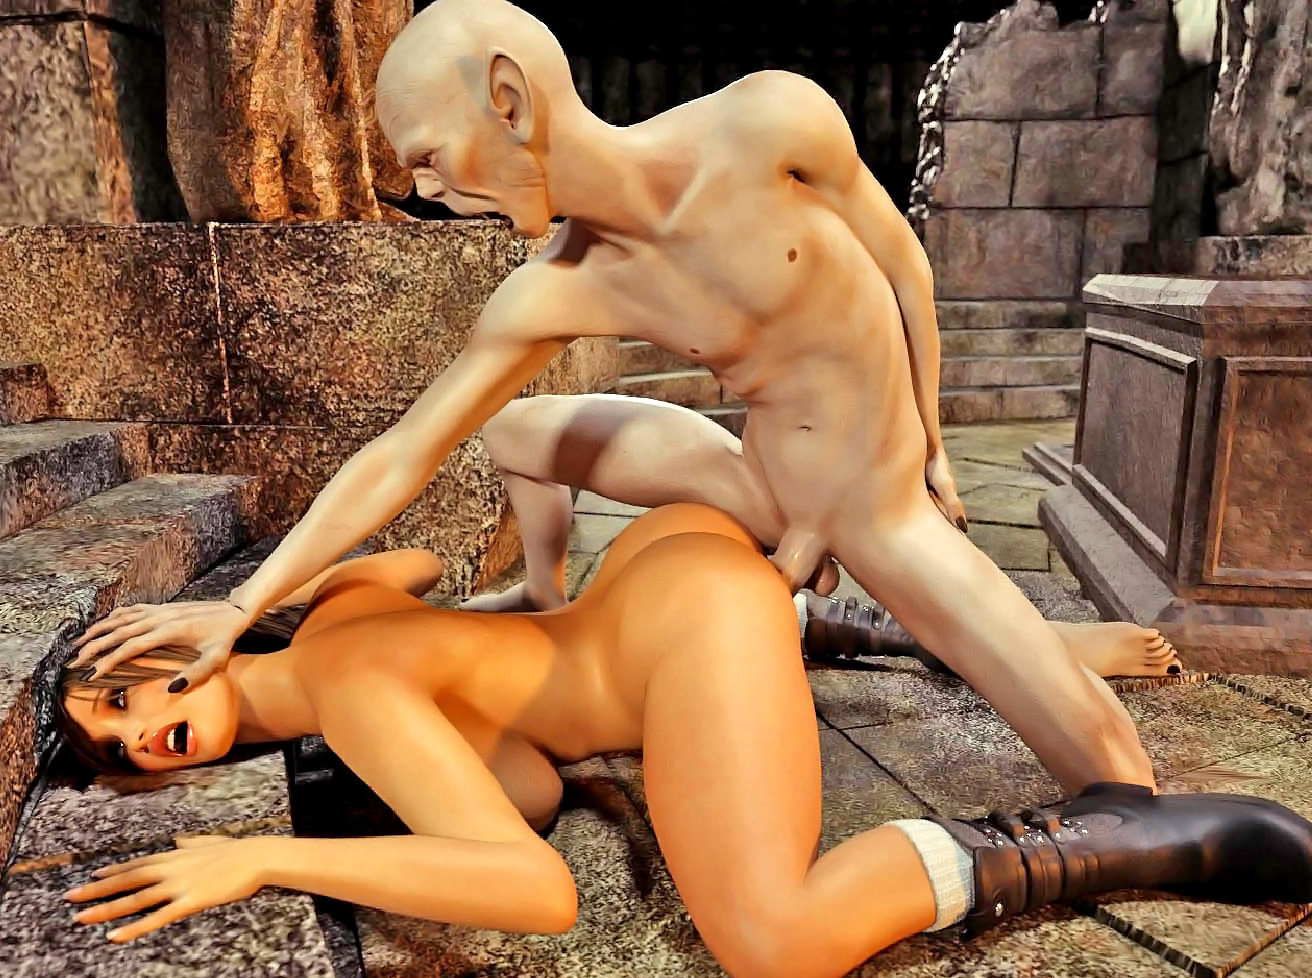 Tomb raider vs monster erotic 3d sex image